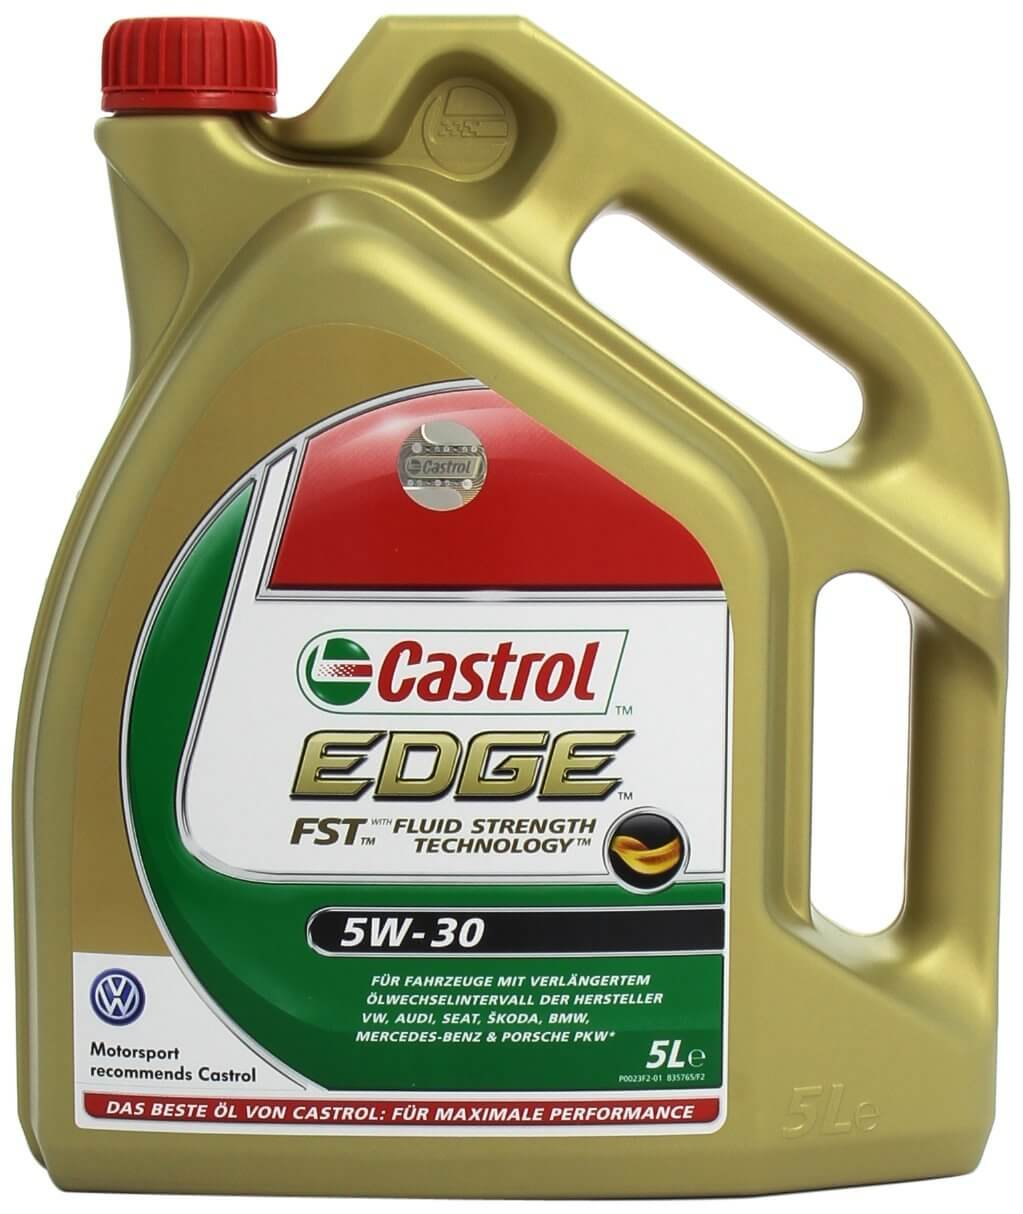 castrol edge fst 5w 30 test auto motor l. Black Bedroom Furniture Sets. Home Design Ideas